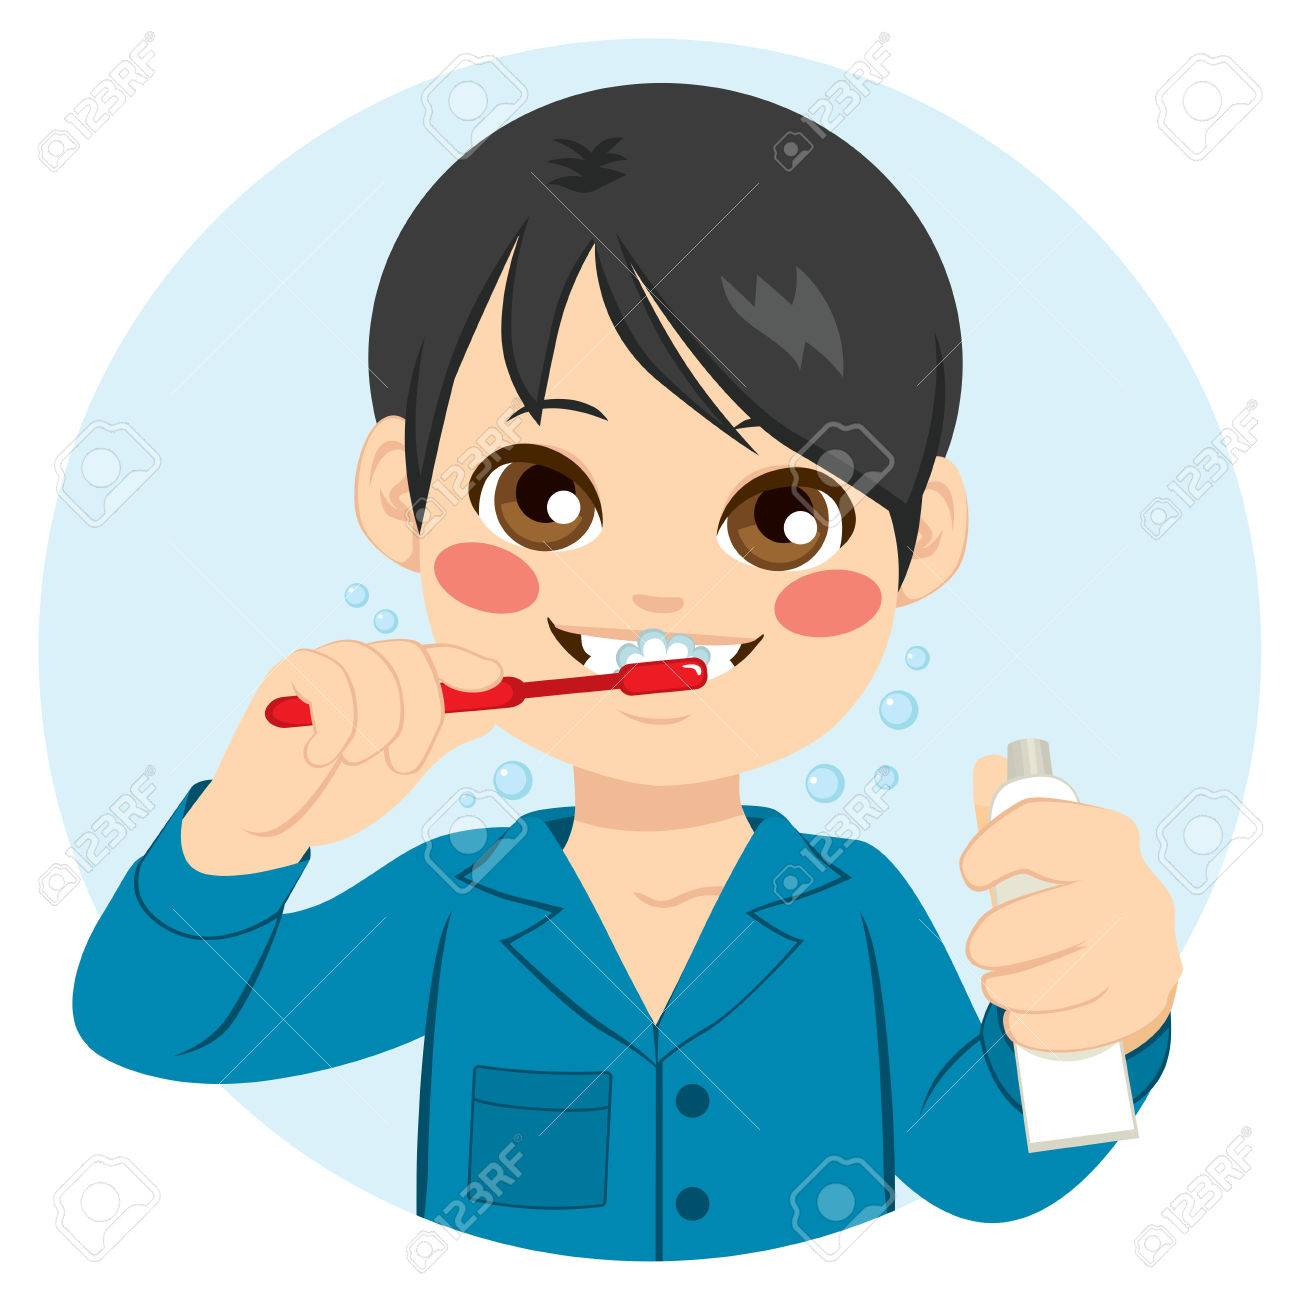 Vector illustration of Toothbrush and toothpaste cartoon   Brushing teeth,  Classic cartoon characters, Islamic kids activities